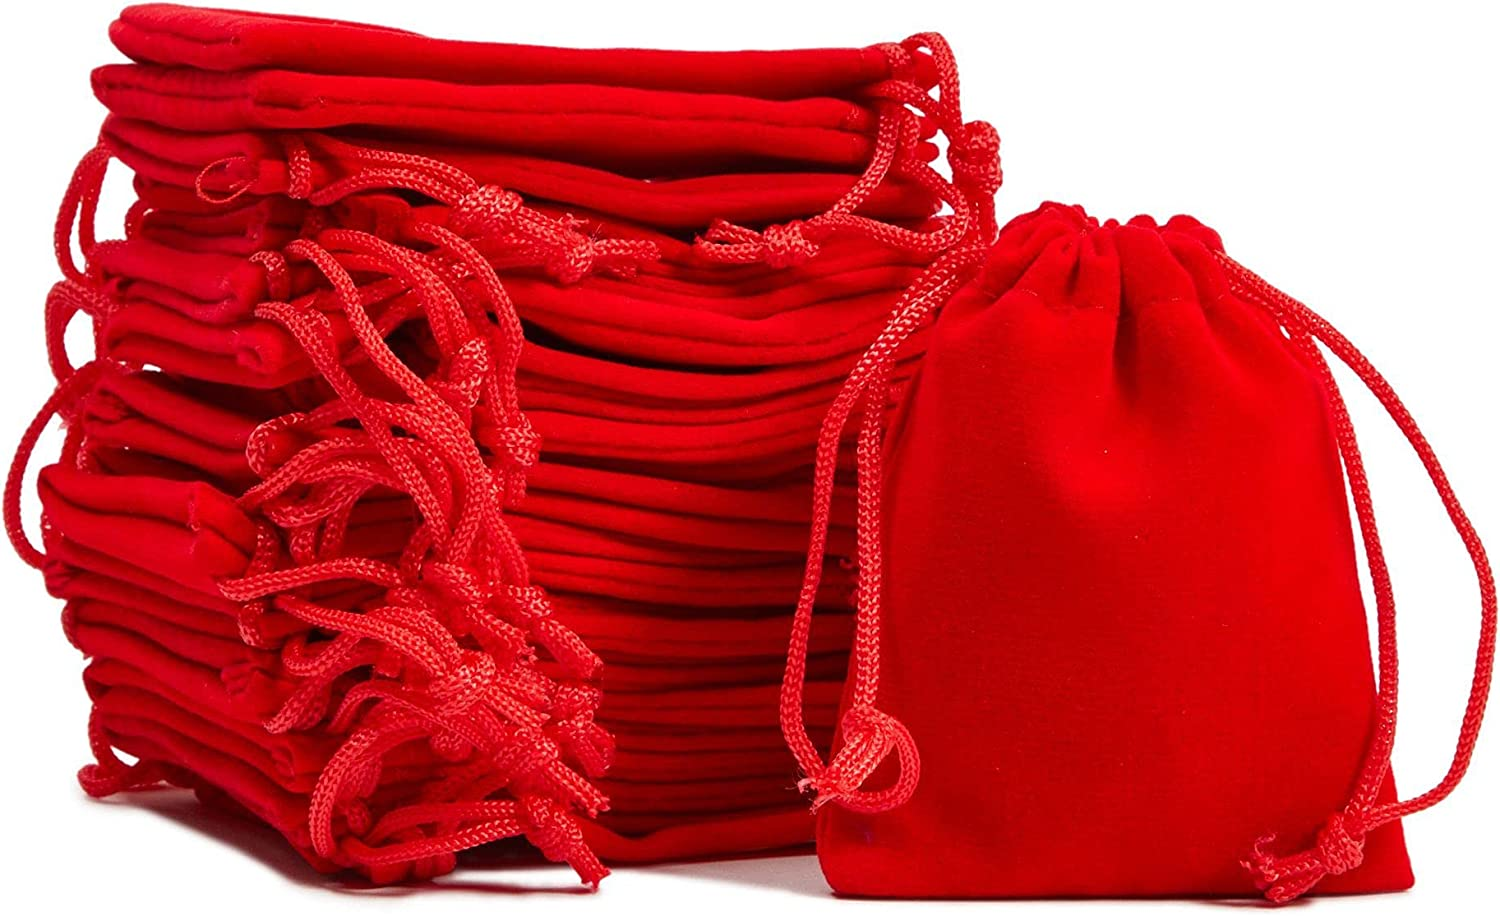 Small Drawstring Jewelry Packaging Pouch Plush Jewelry Organizer,Bowknot Pocket Purse,Small Gift Bags for Lipsticks Earrings Necklace Rings